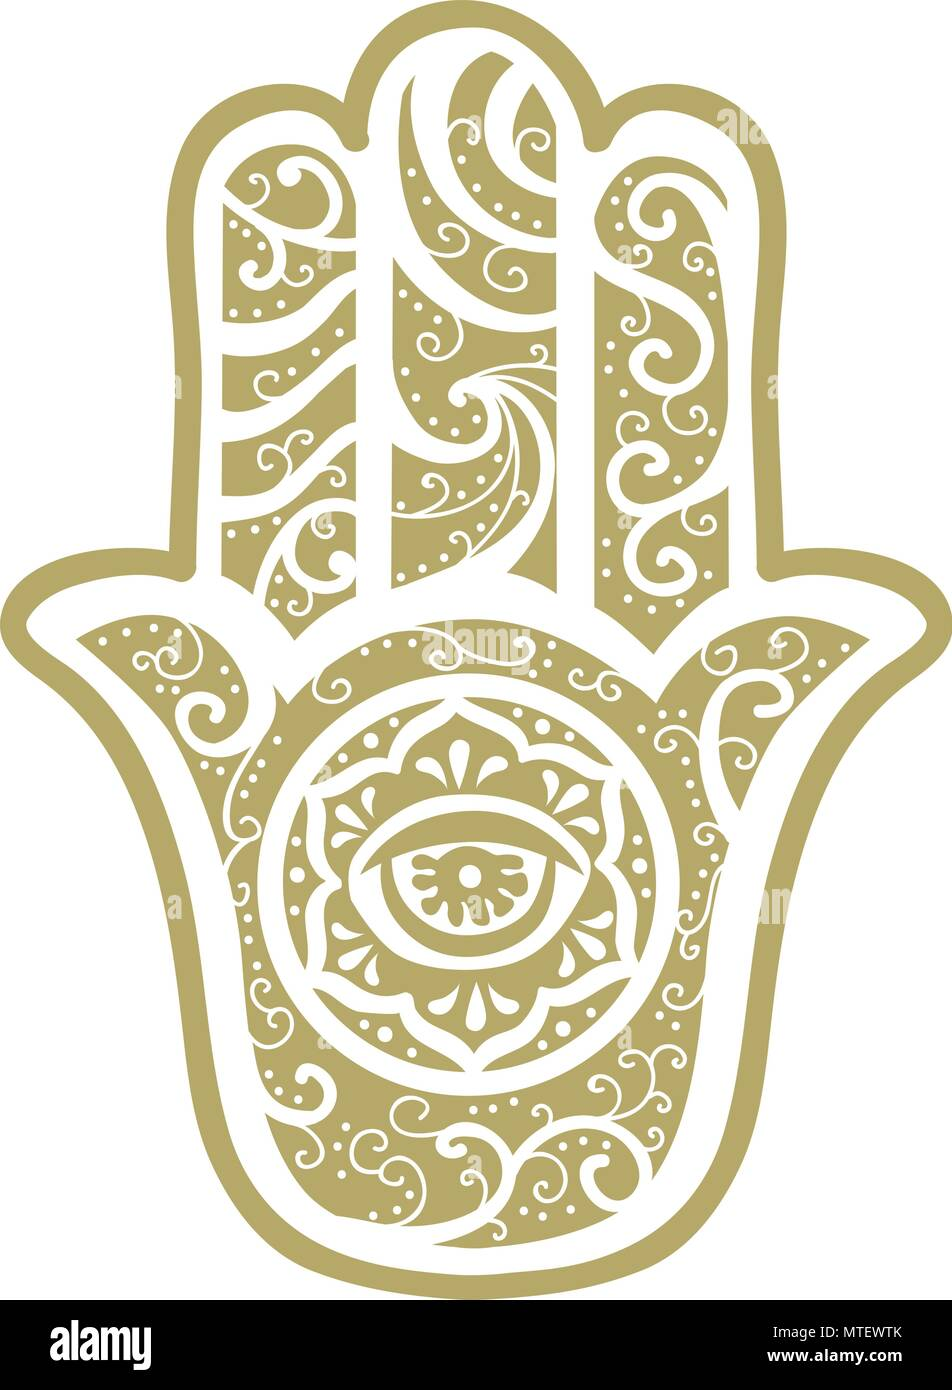 The Hamsa Hand, Ancient Middle Eastern amulet symbolizing the Hand of God. - Stock Vector